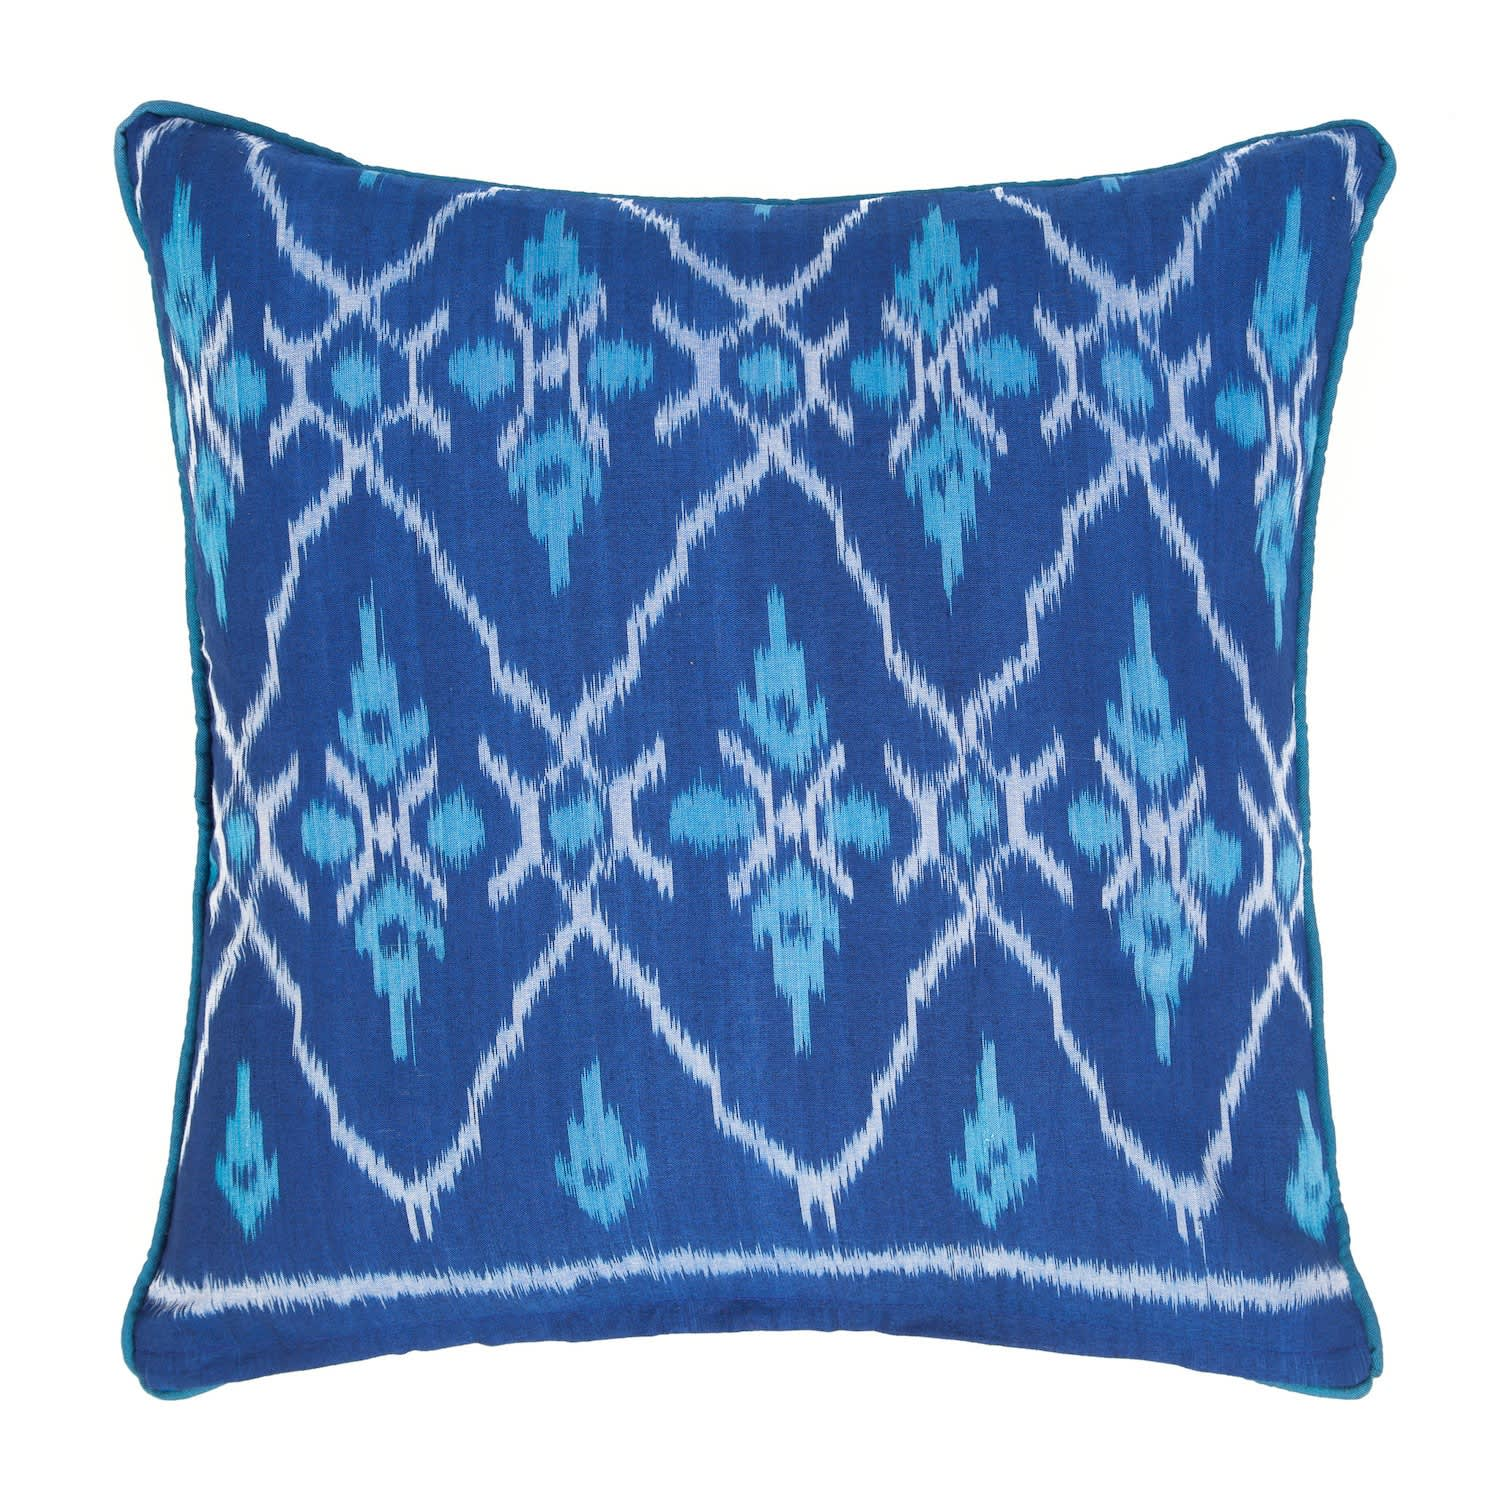 Biru Blue Turquoise Ikat Cushion The World In Cushions Wolf Badger